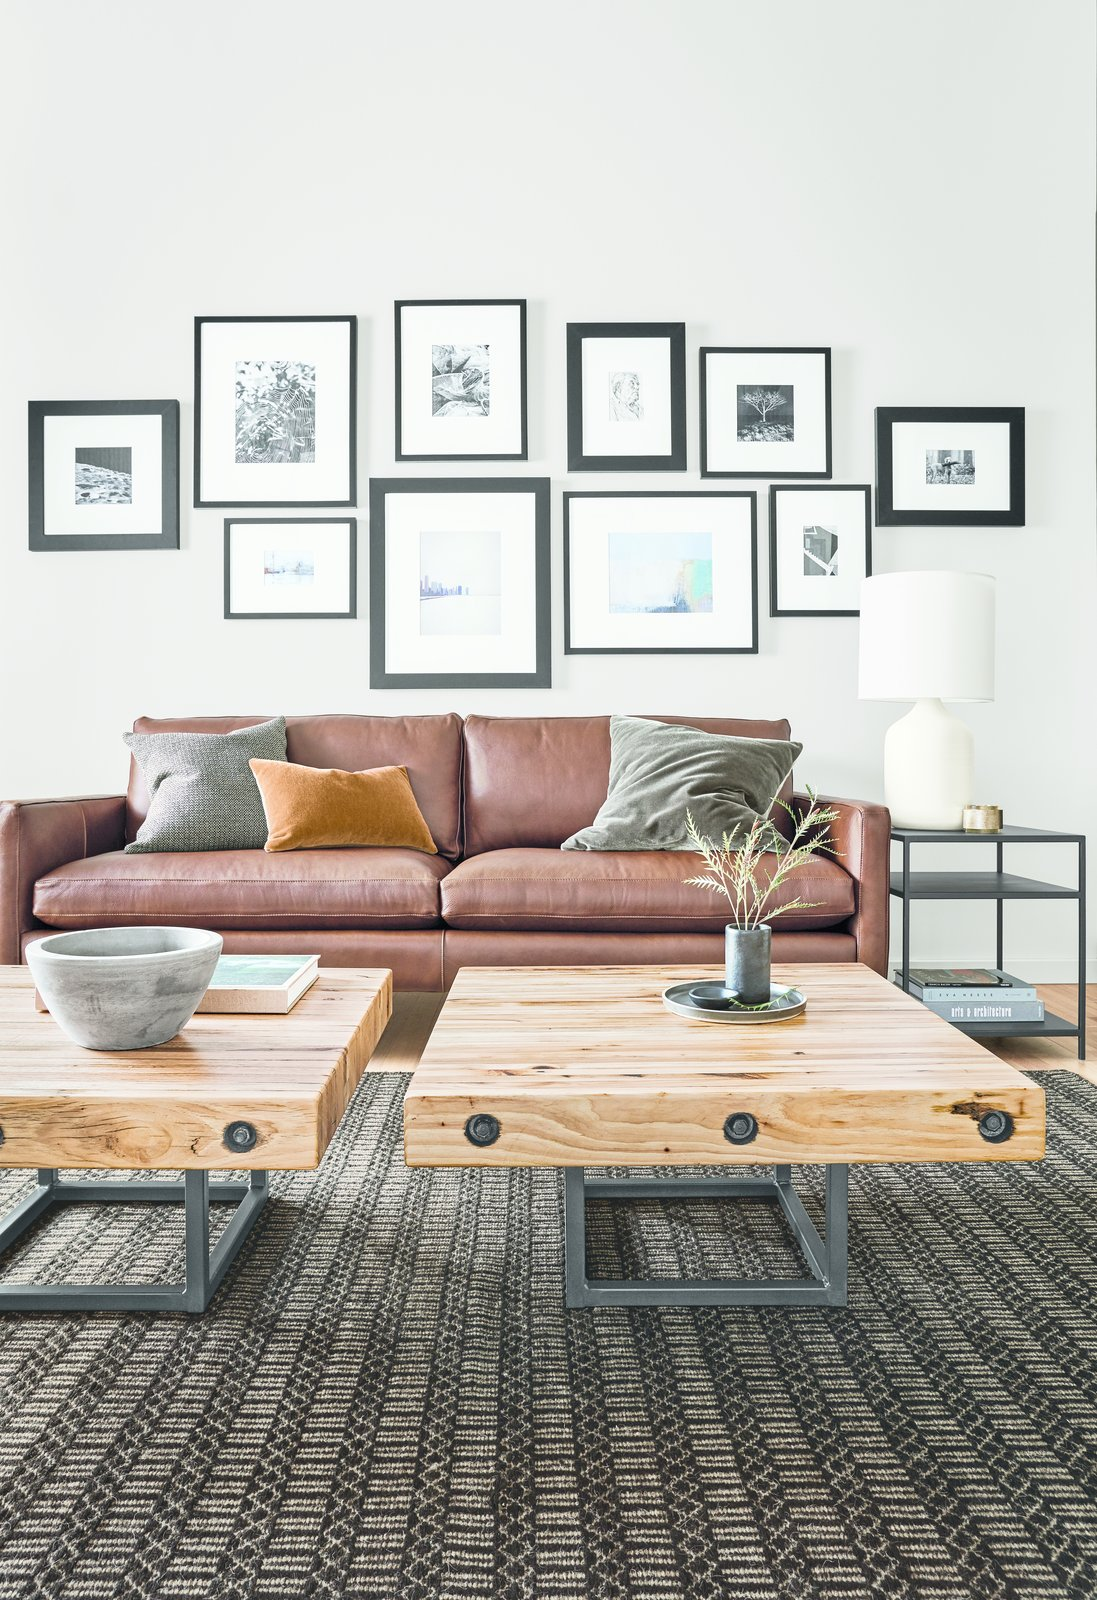 The small-scale Briggs tables are created from floor tiles of automotive stamping plants from across the Midwest, primarily made of domestic hickory.  Modern Living Room Furniture by Room & Board